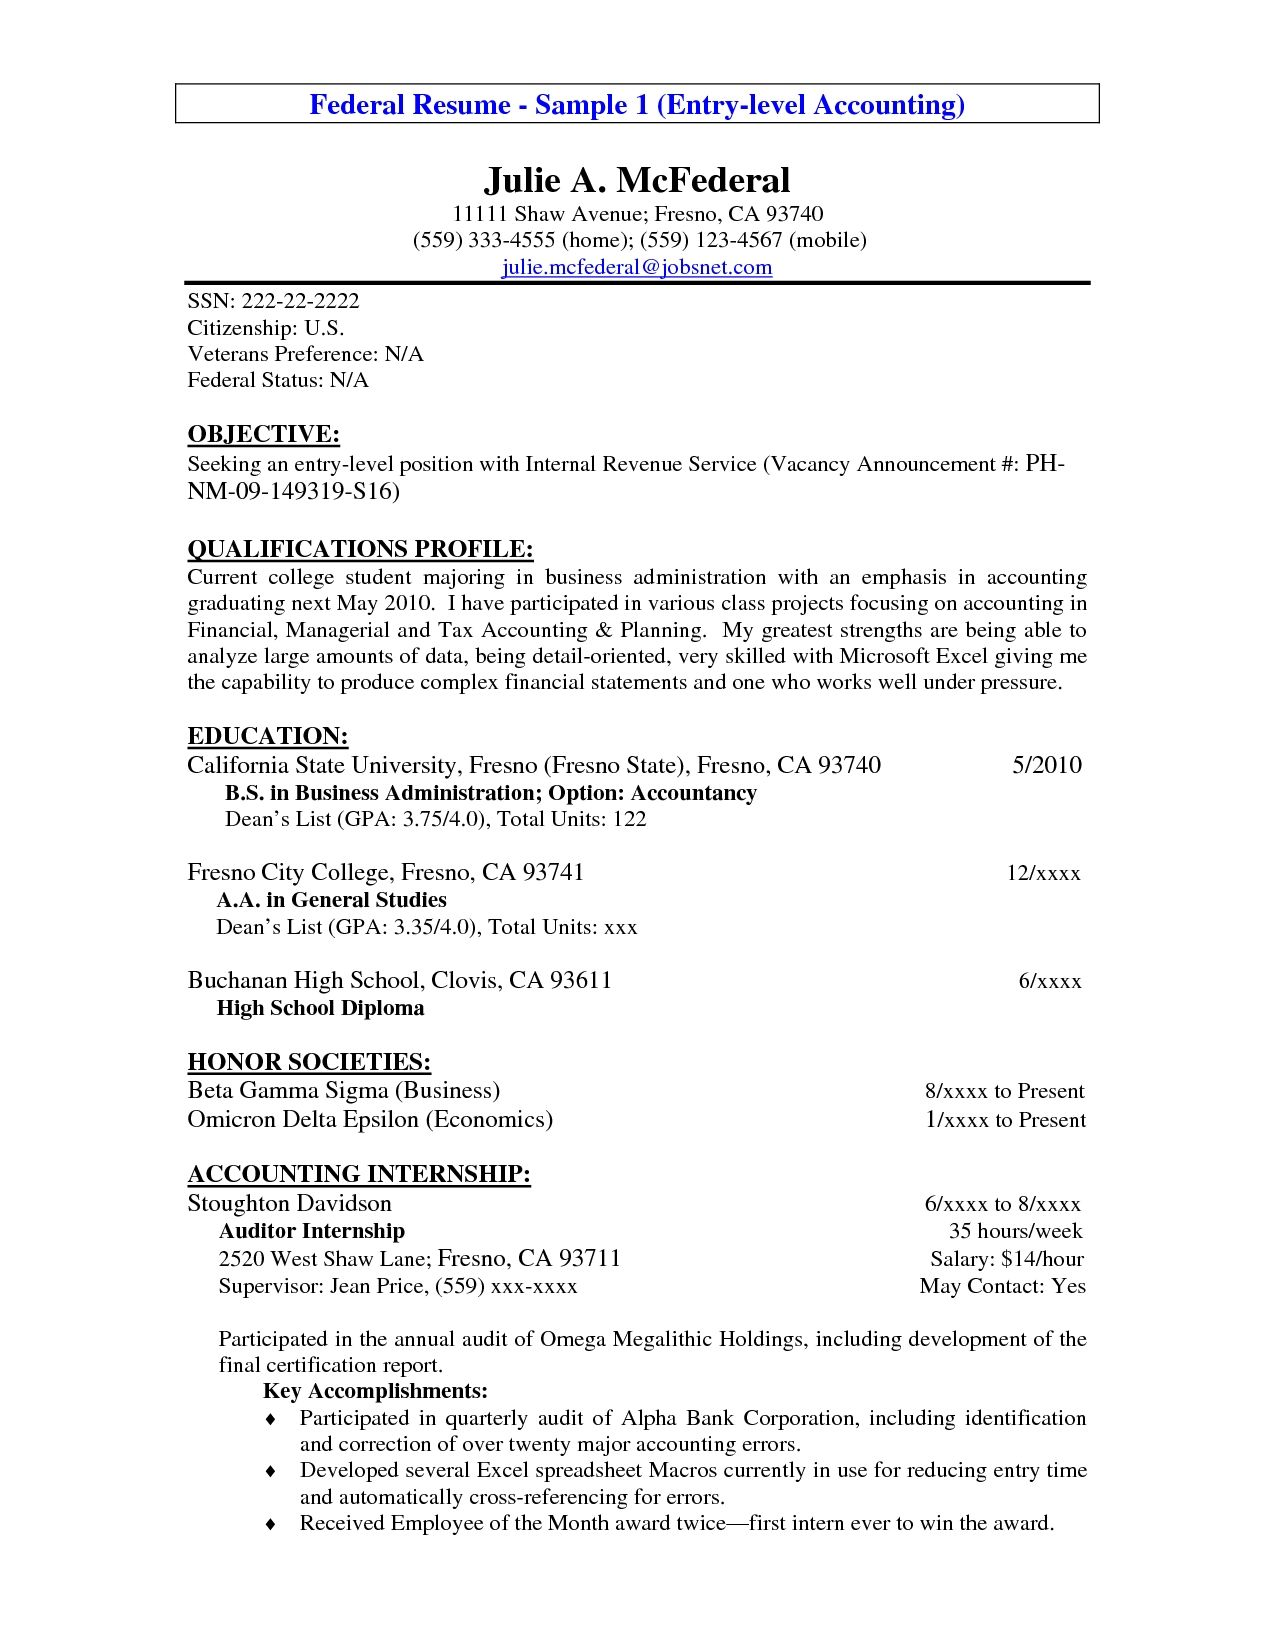 Accounting Intern Resume Entry Level Resume Example Entry Level Accounting Resume Sample